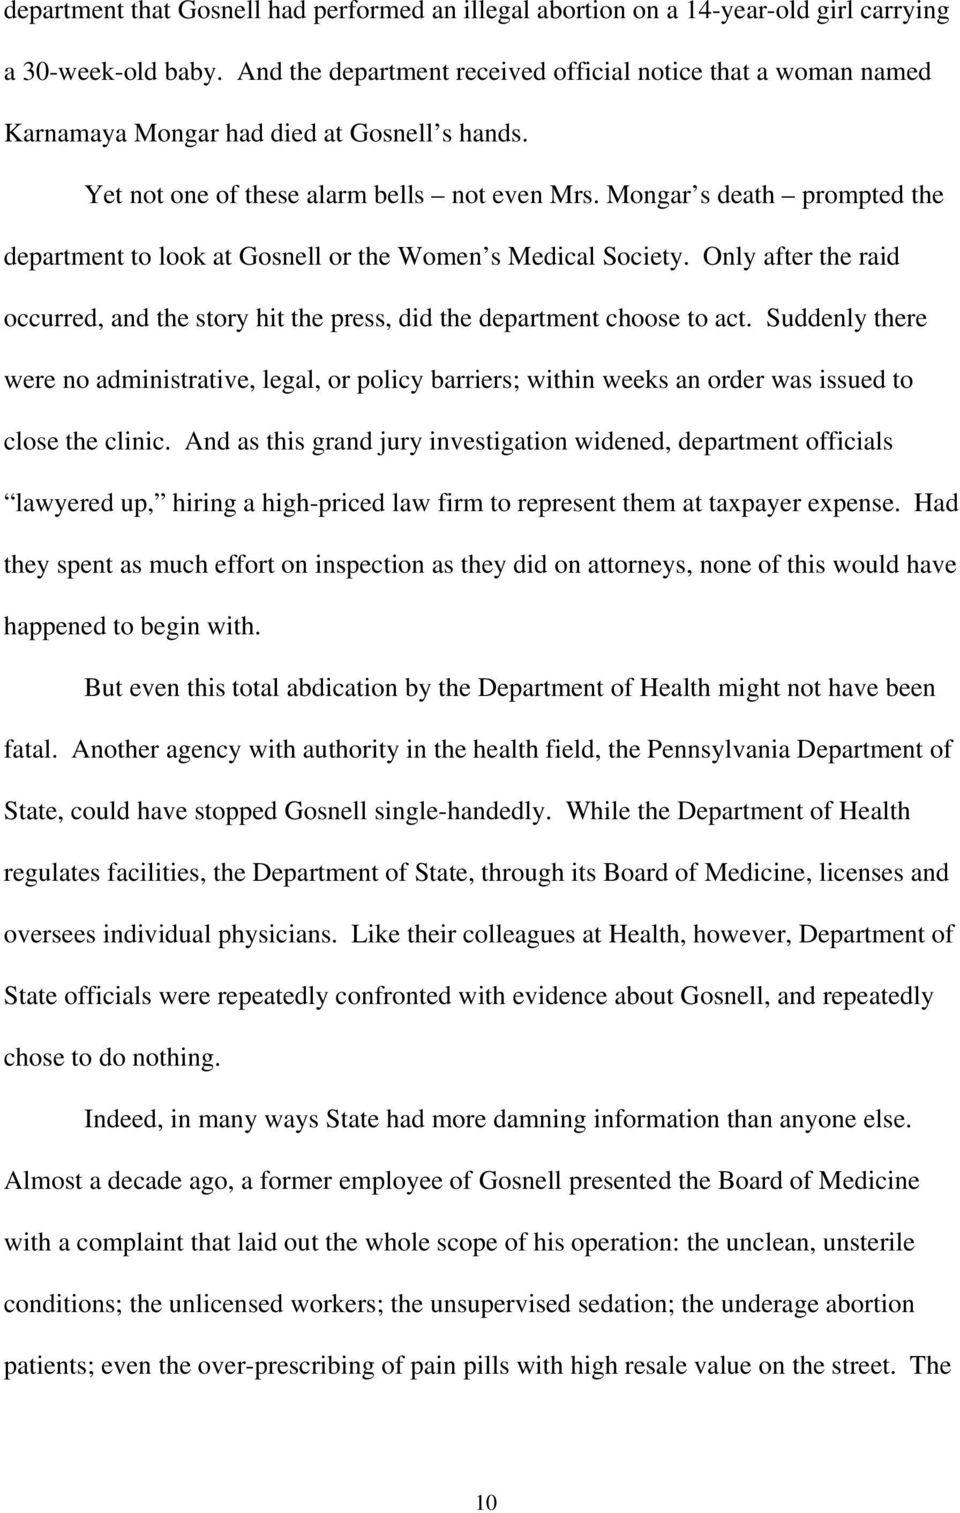 Mongar s death prompted the department to look at Gosnell or the Women s Medical Society. Only after the raid occurred, and the story hit the press, did the department choose to act.